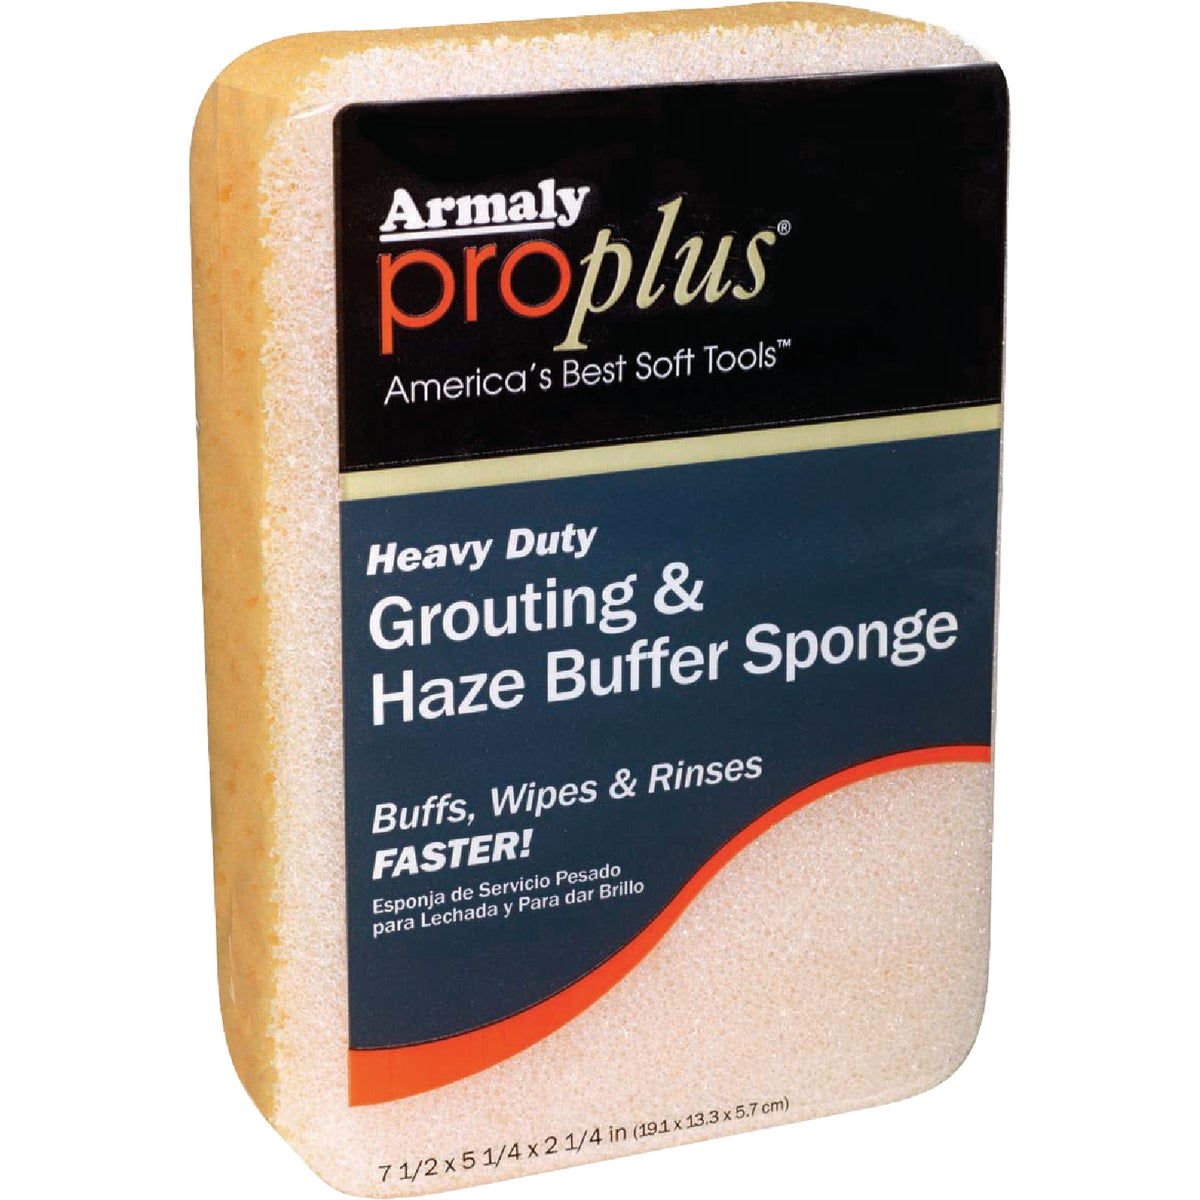 GROUT&HAZE BUFFER SPONGE - 00606-4 by Armaly Brands